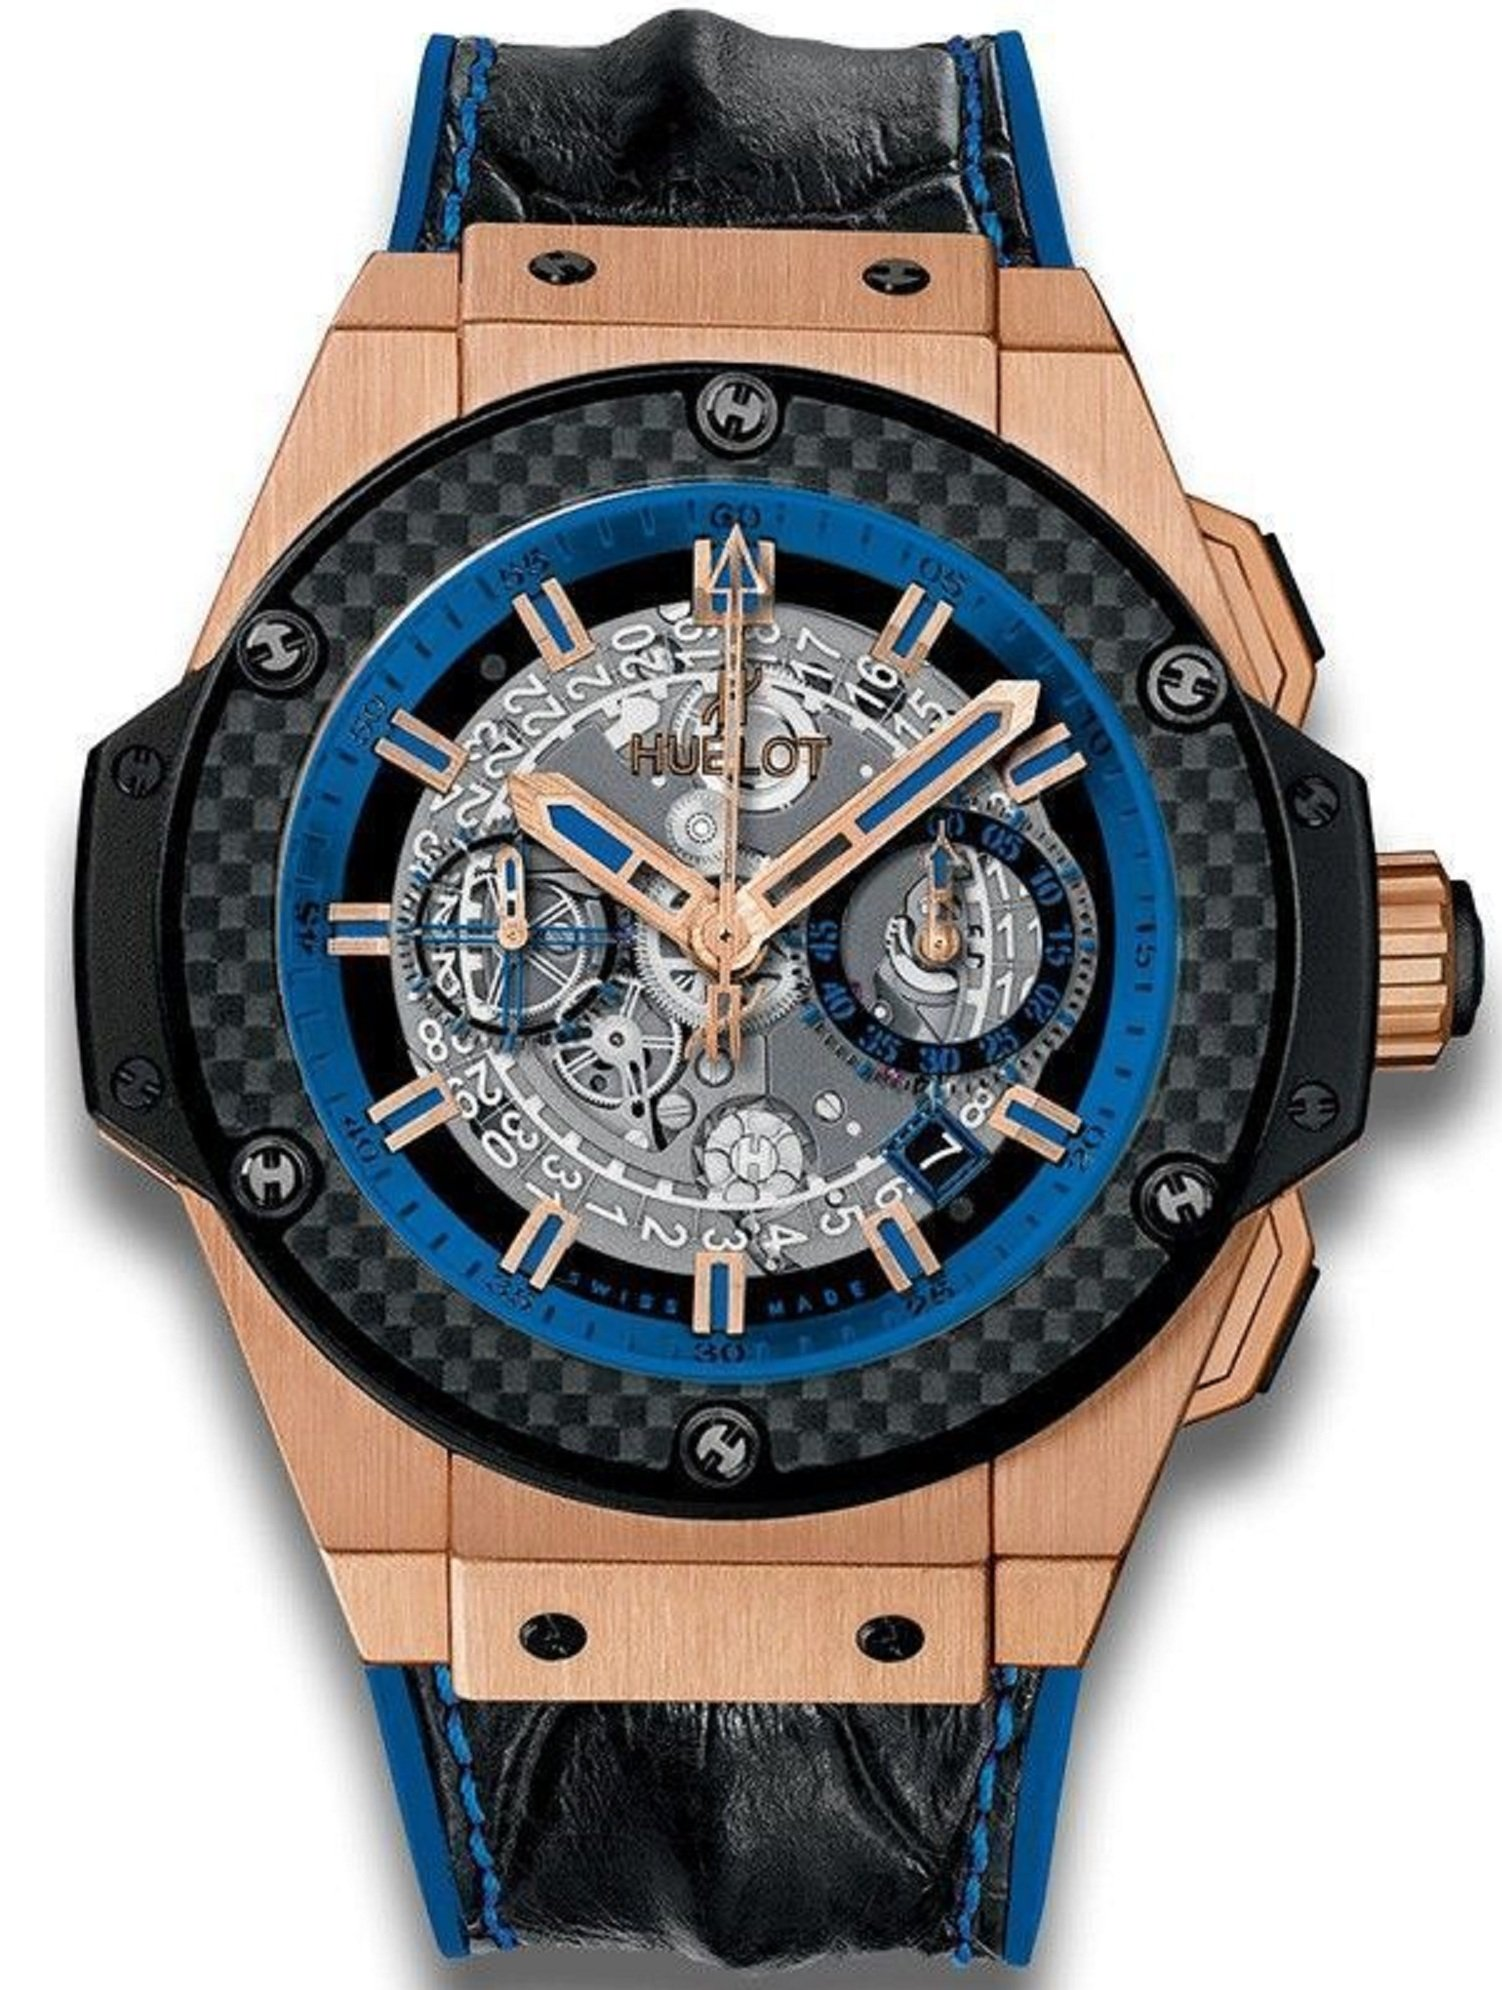 Hublot King Power Unico 48mm Automatic in Rose Gold with Carbon Fiber Bezel